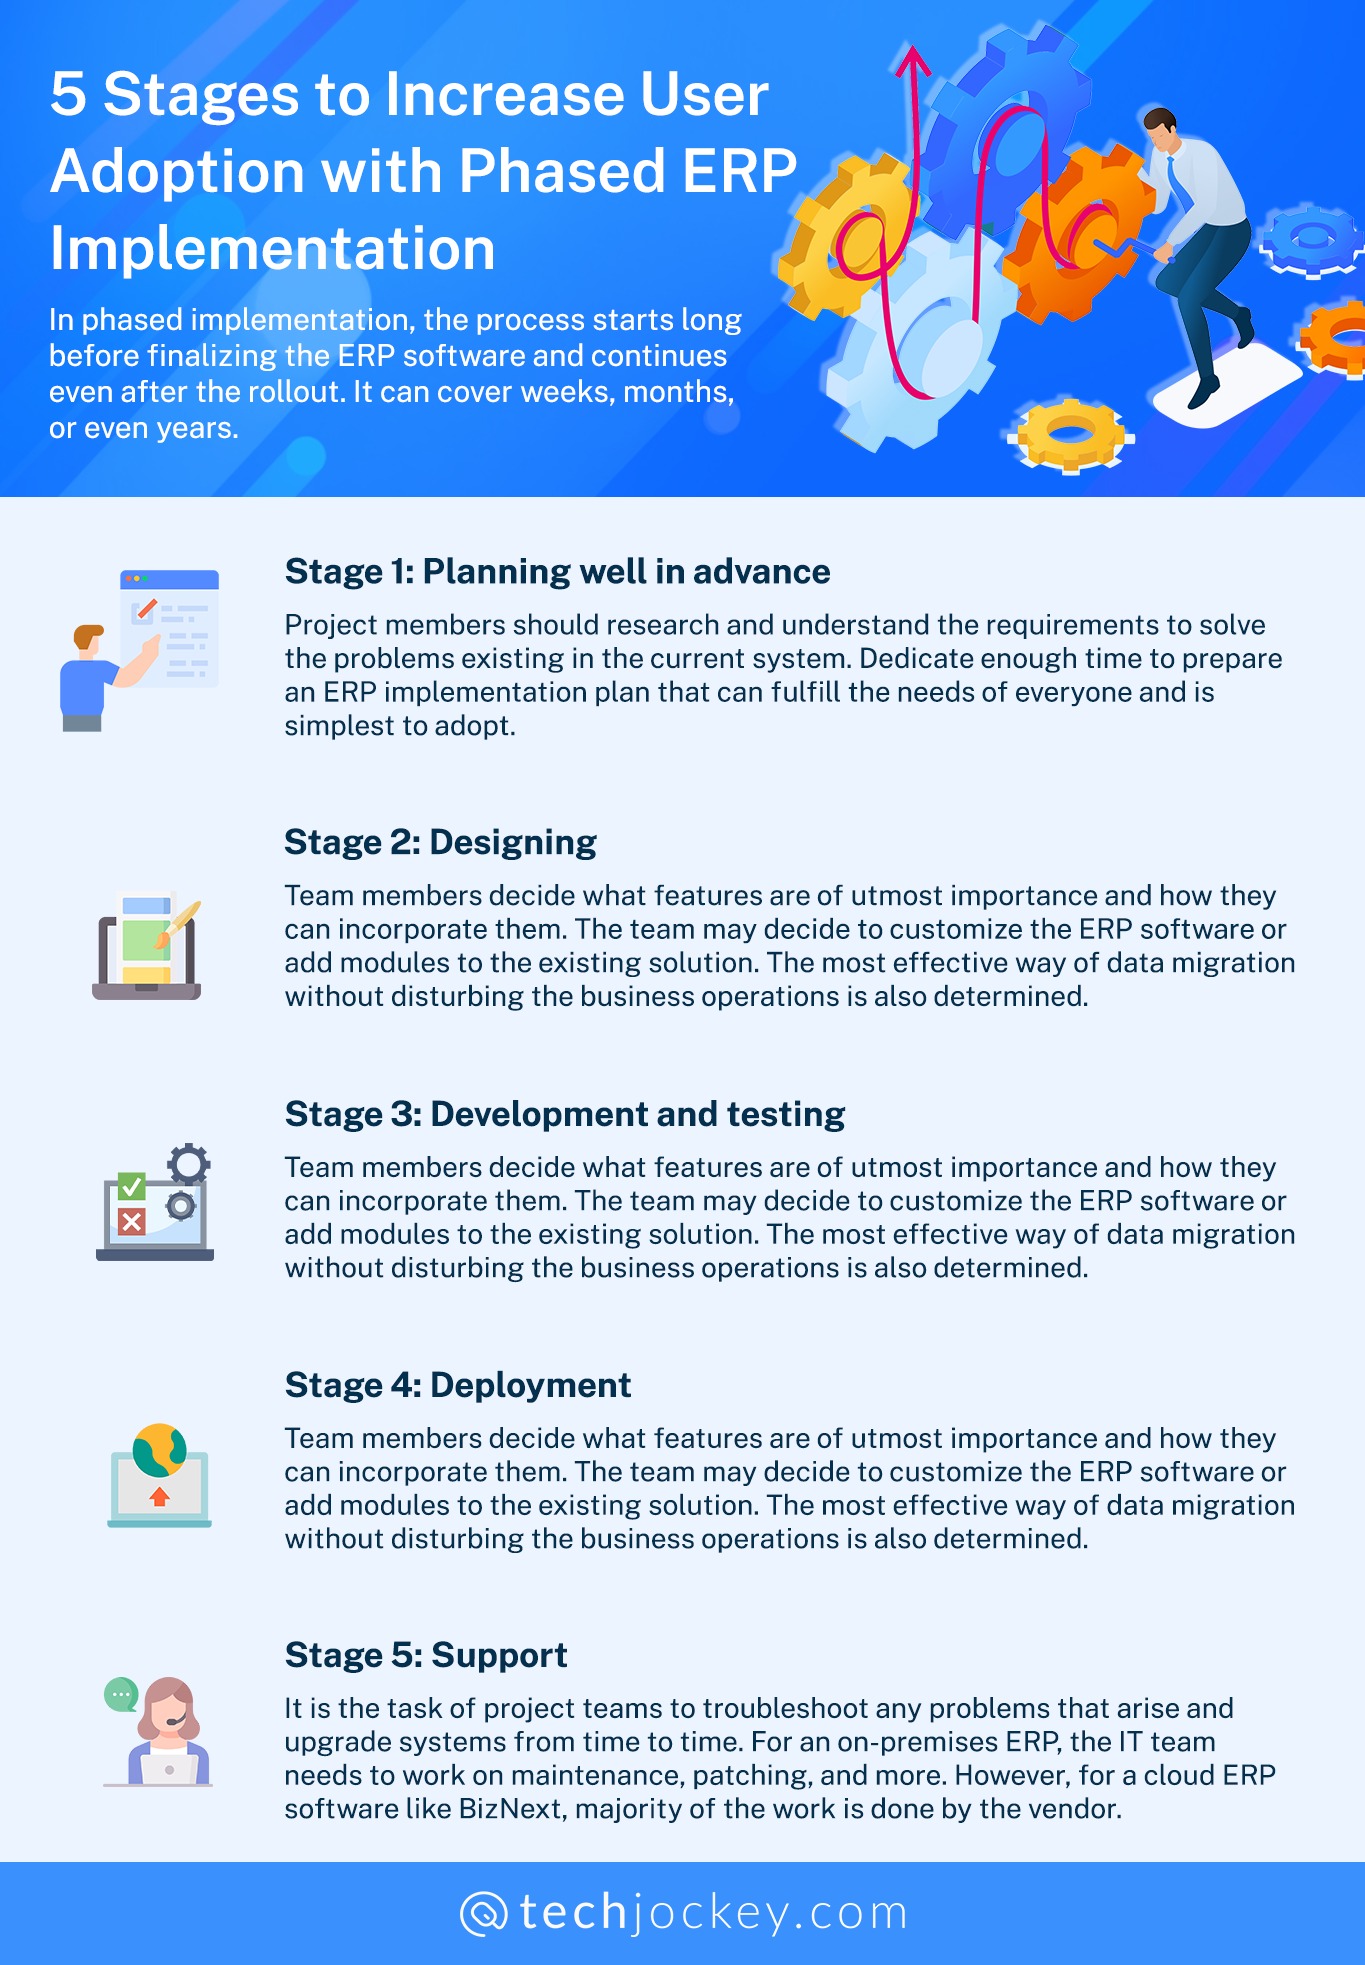 5 Stages to Increase User Adoption with Phased ERP Implementation Strategy